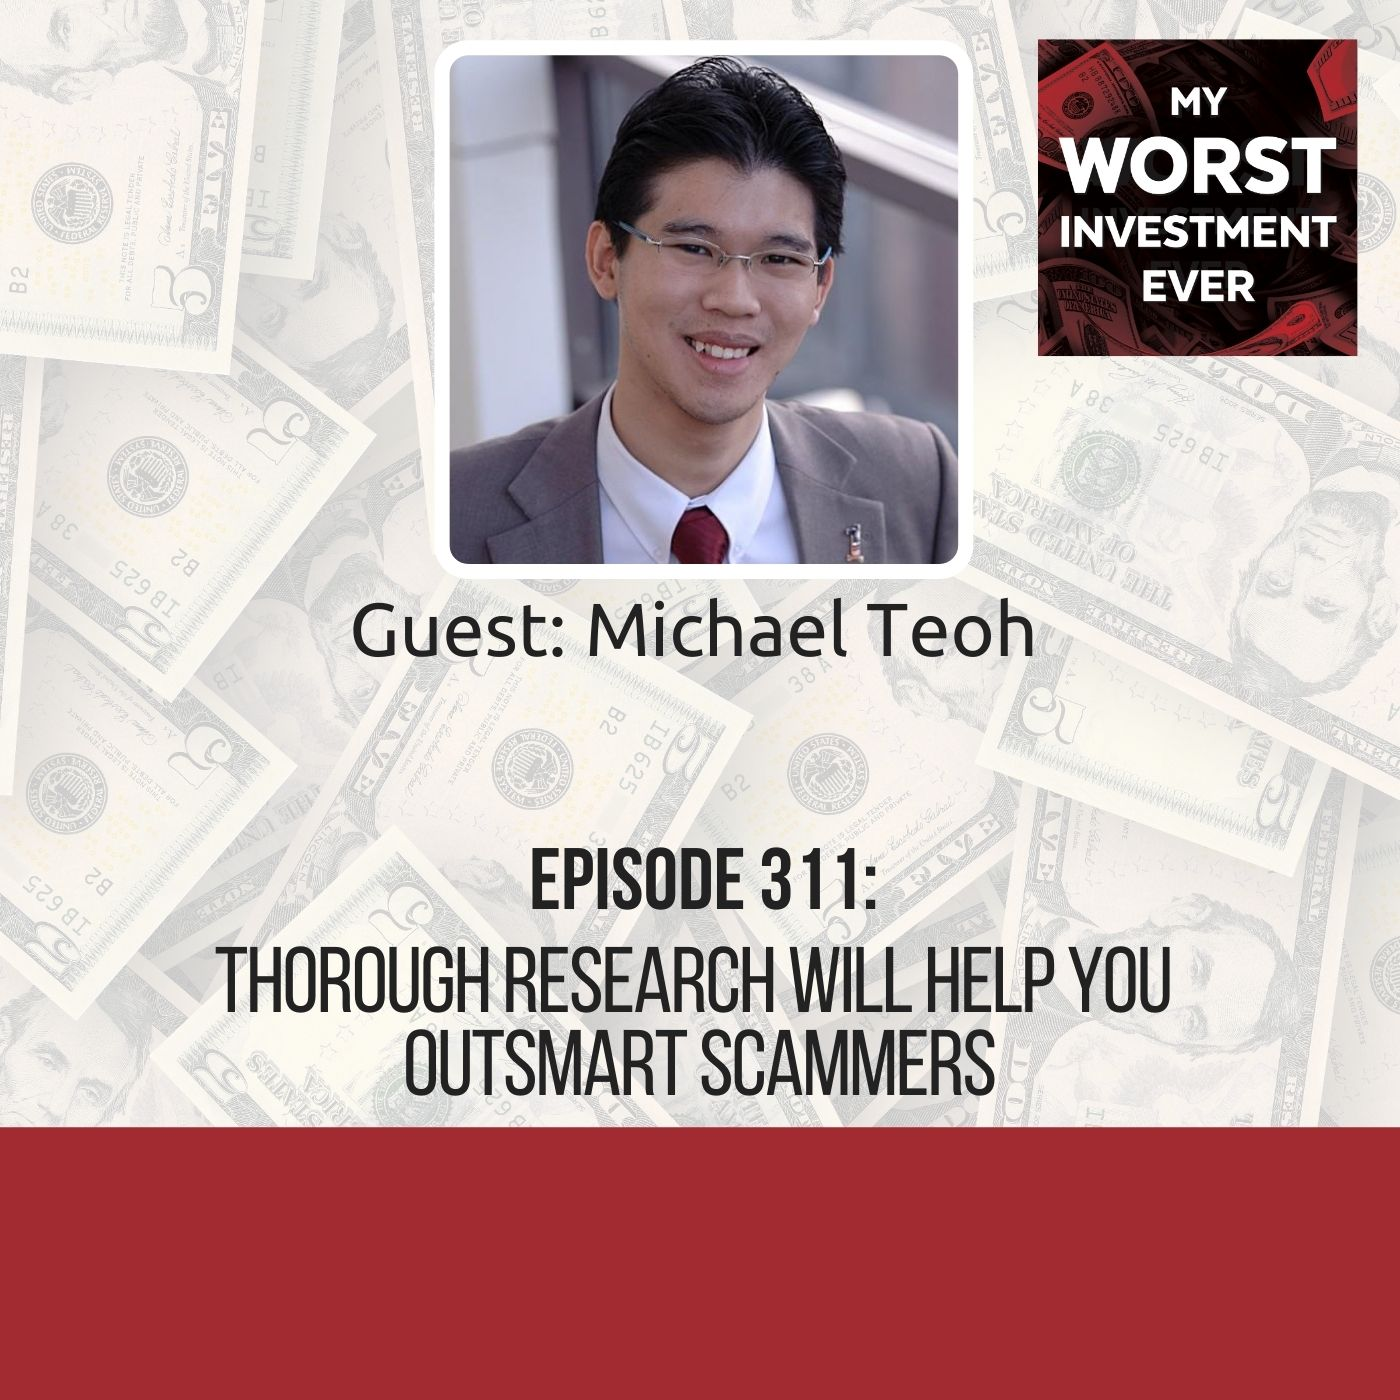 Michael Teoh – Thorough Research Will Help You Outsmart Scammers